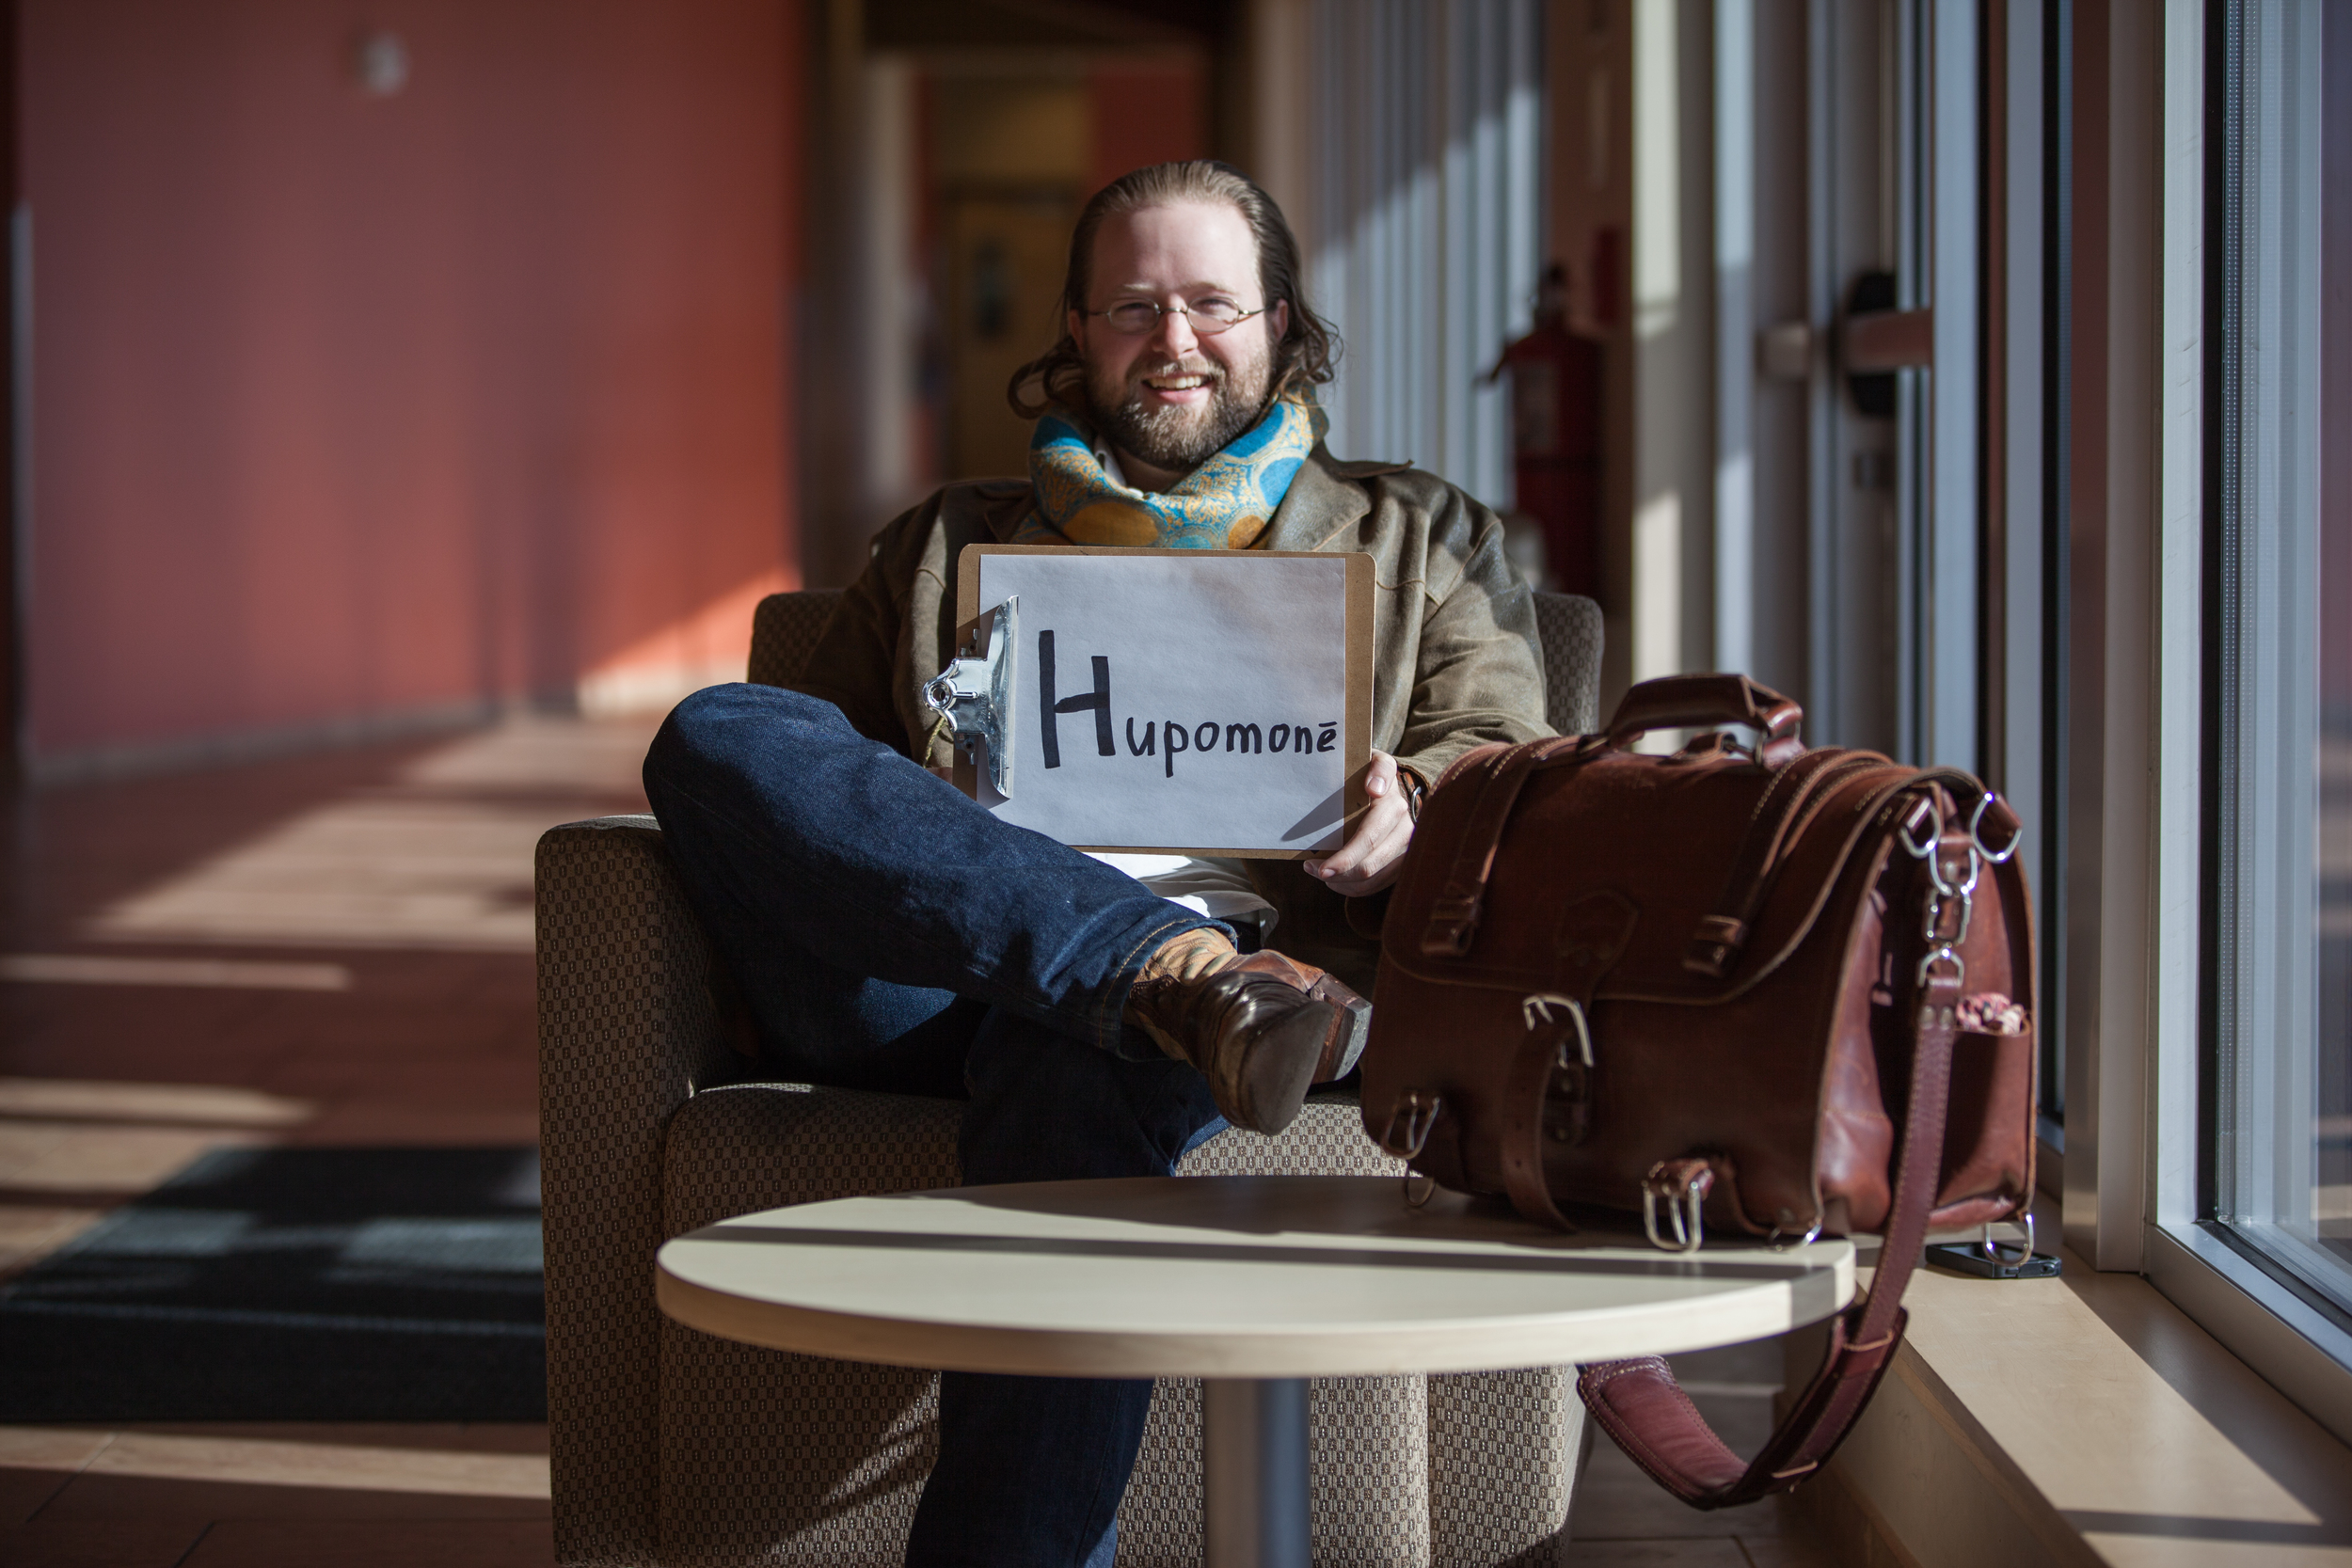 Man sitting in a chair holding a sign saying hupomone.